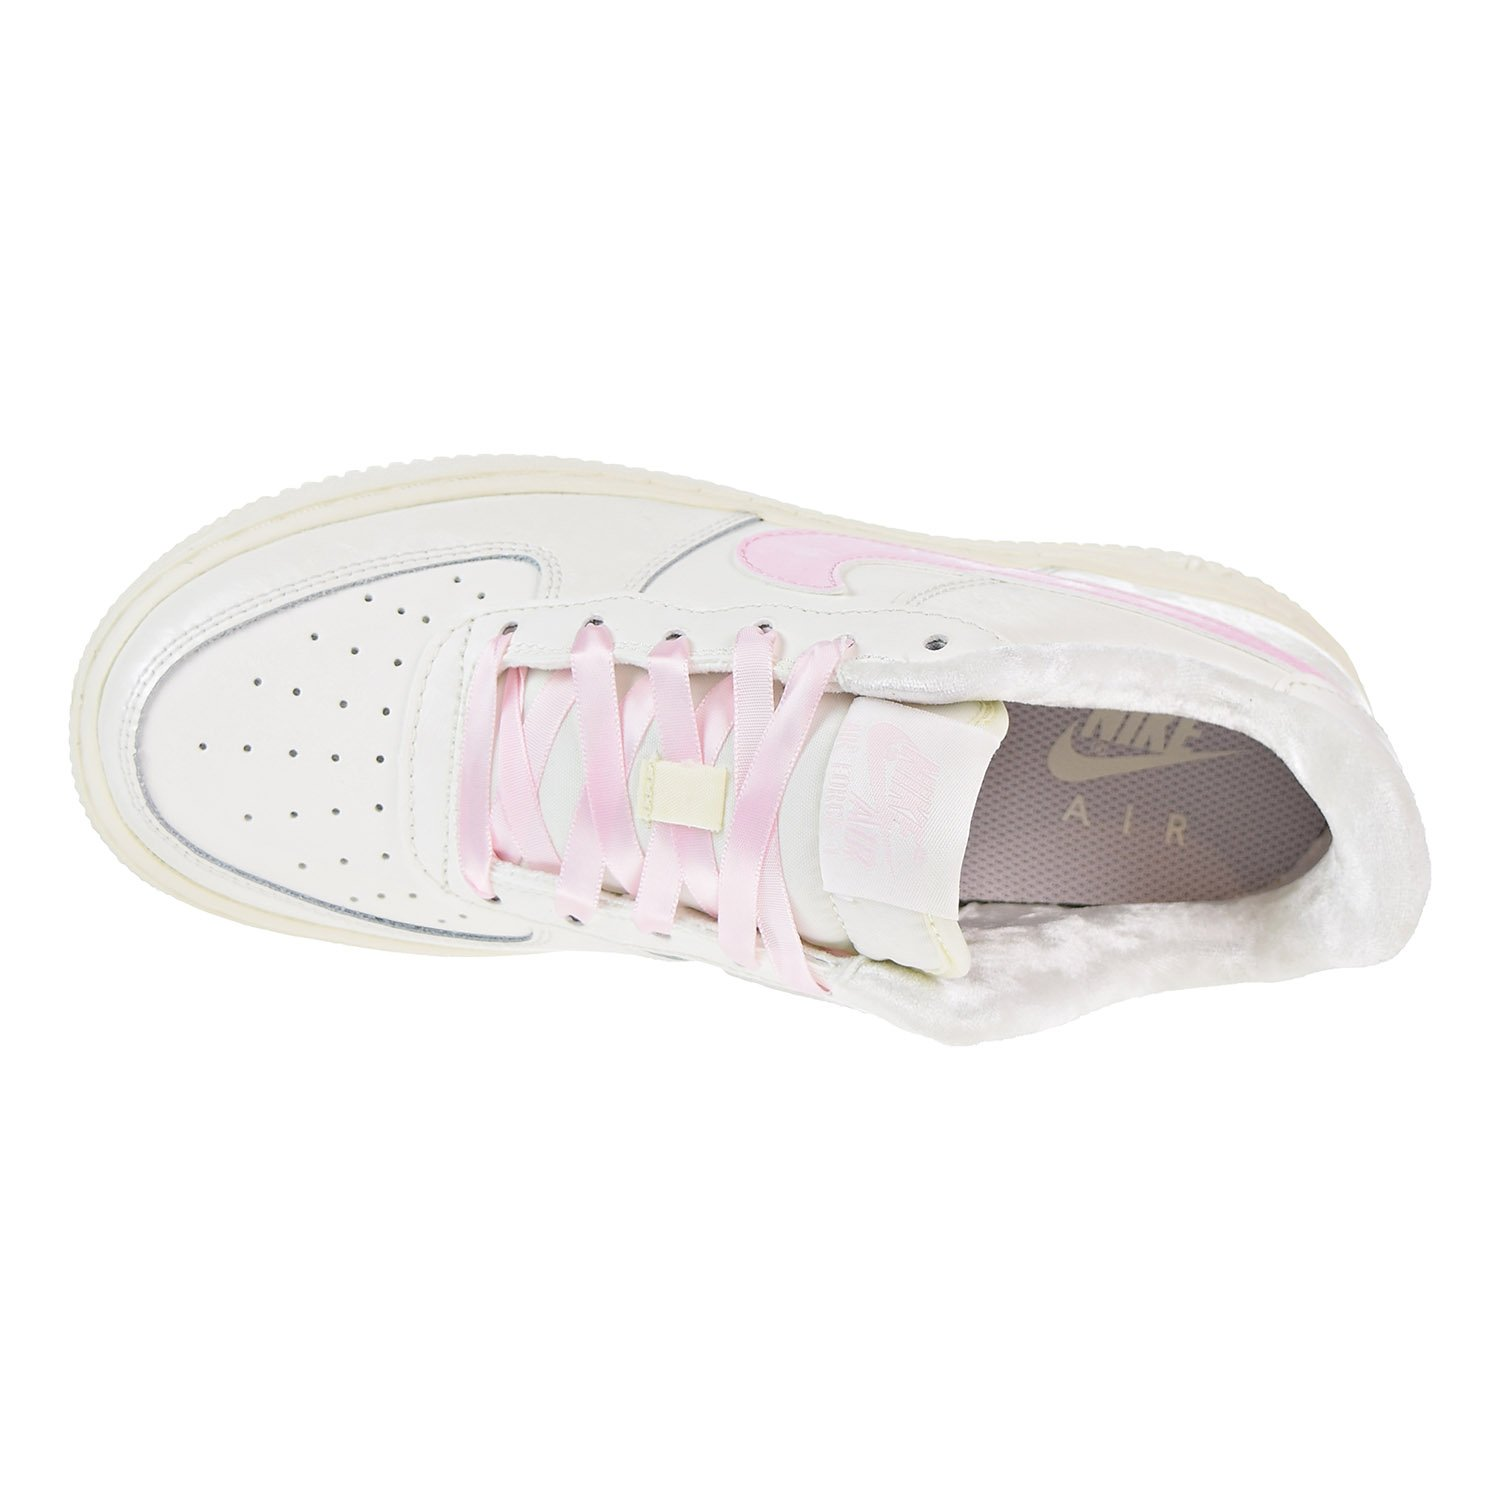 Nike Air Force 1 Af1 White Pink 314219 130 Copuon, Price